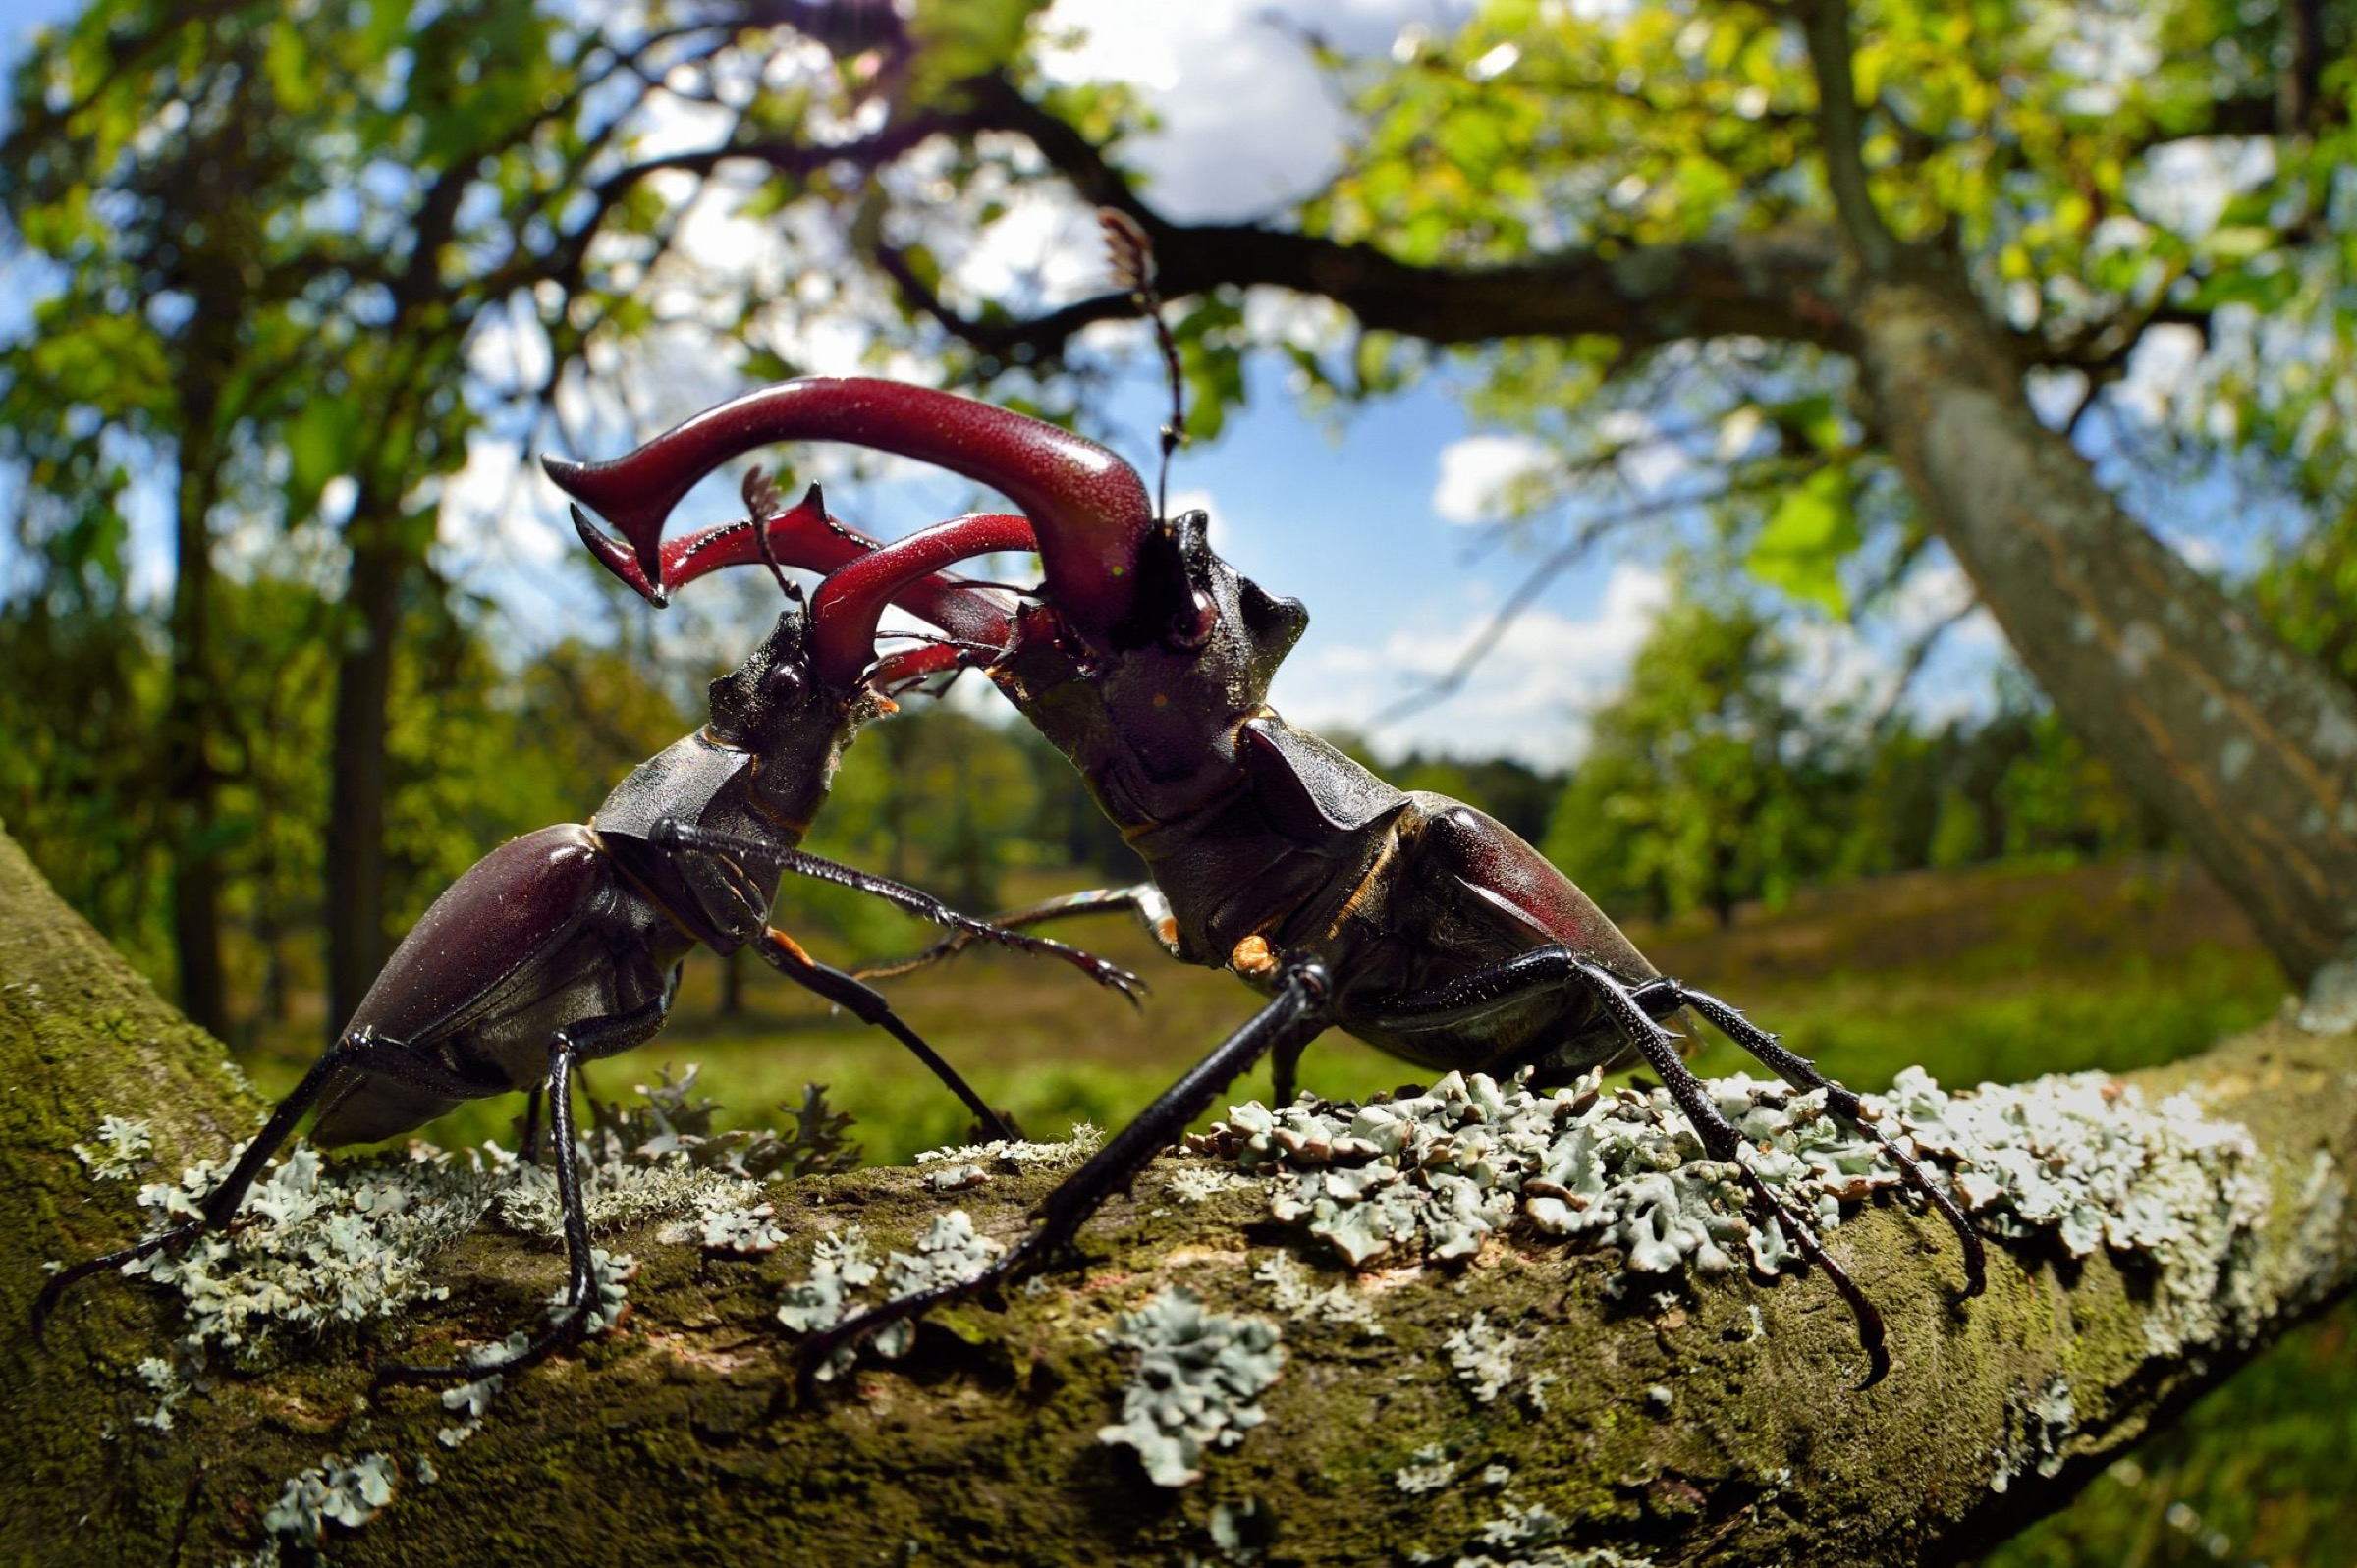 Stag beetle (Lucanus cervus) males fighting on oak tree branch, Elbe, Germany, June.